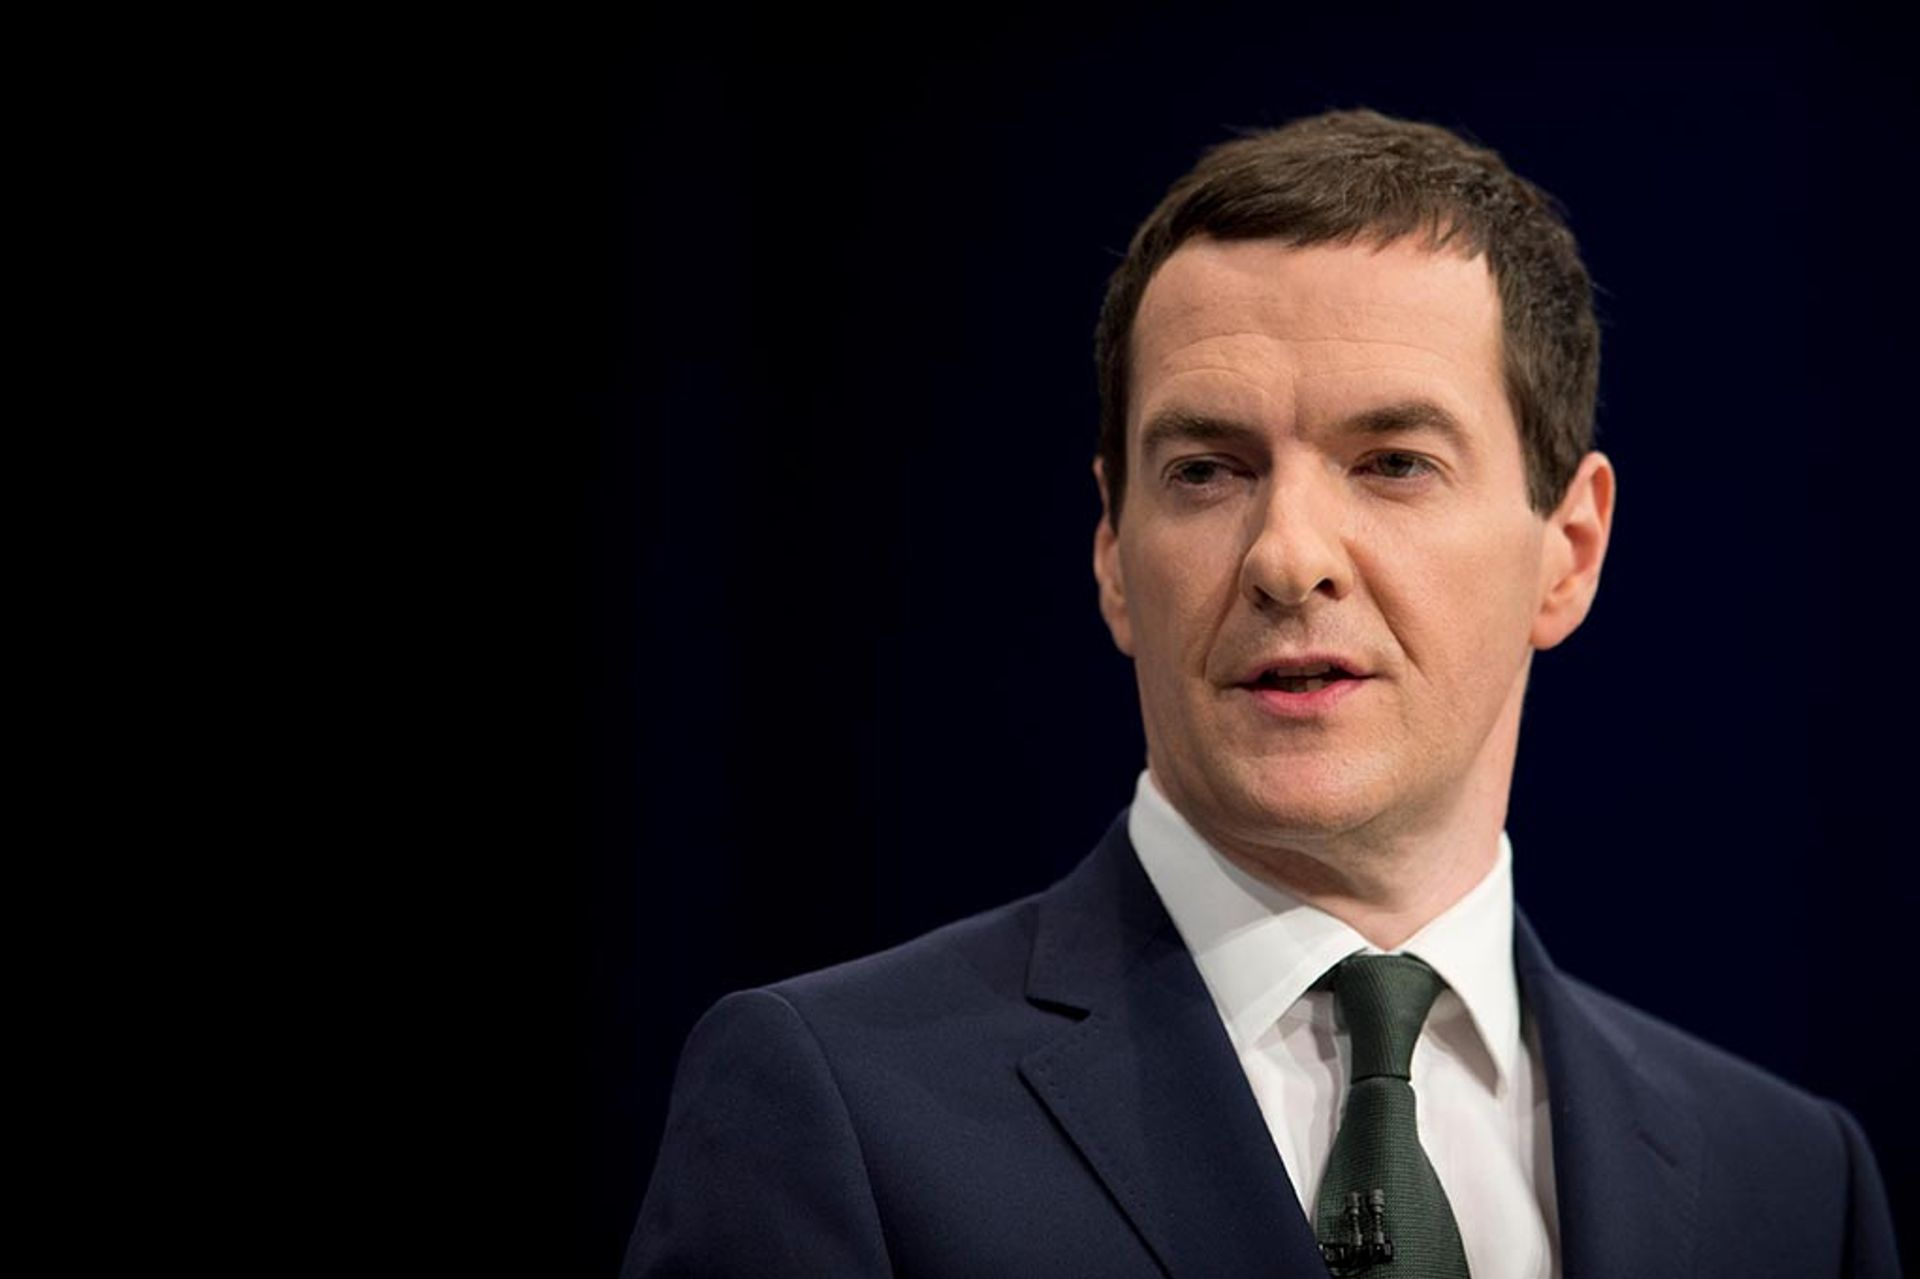 George Osborne, the former UK Chancellor of the Exchequer, has been named the new chairman of the British Museum by its board of trustees. © Russell Hart/Alamy Live News